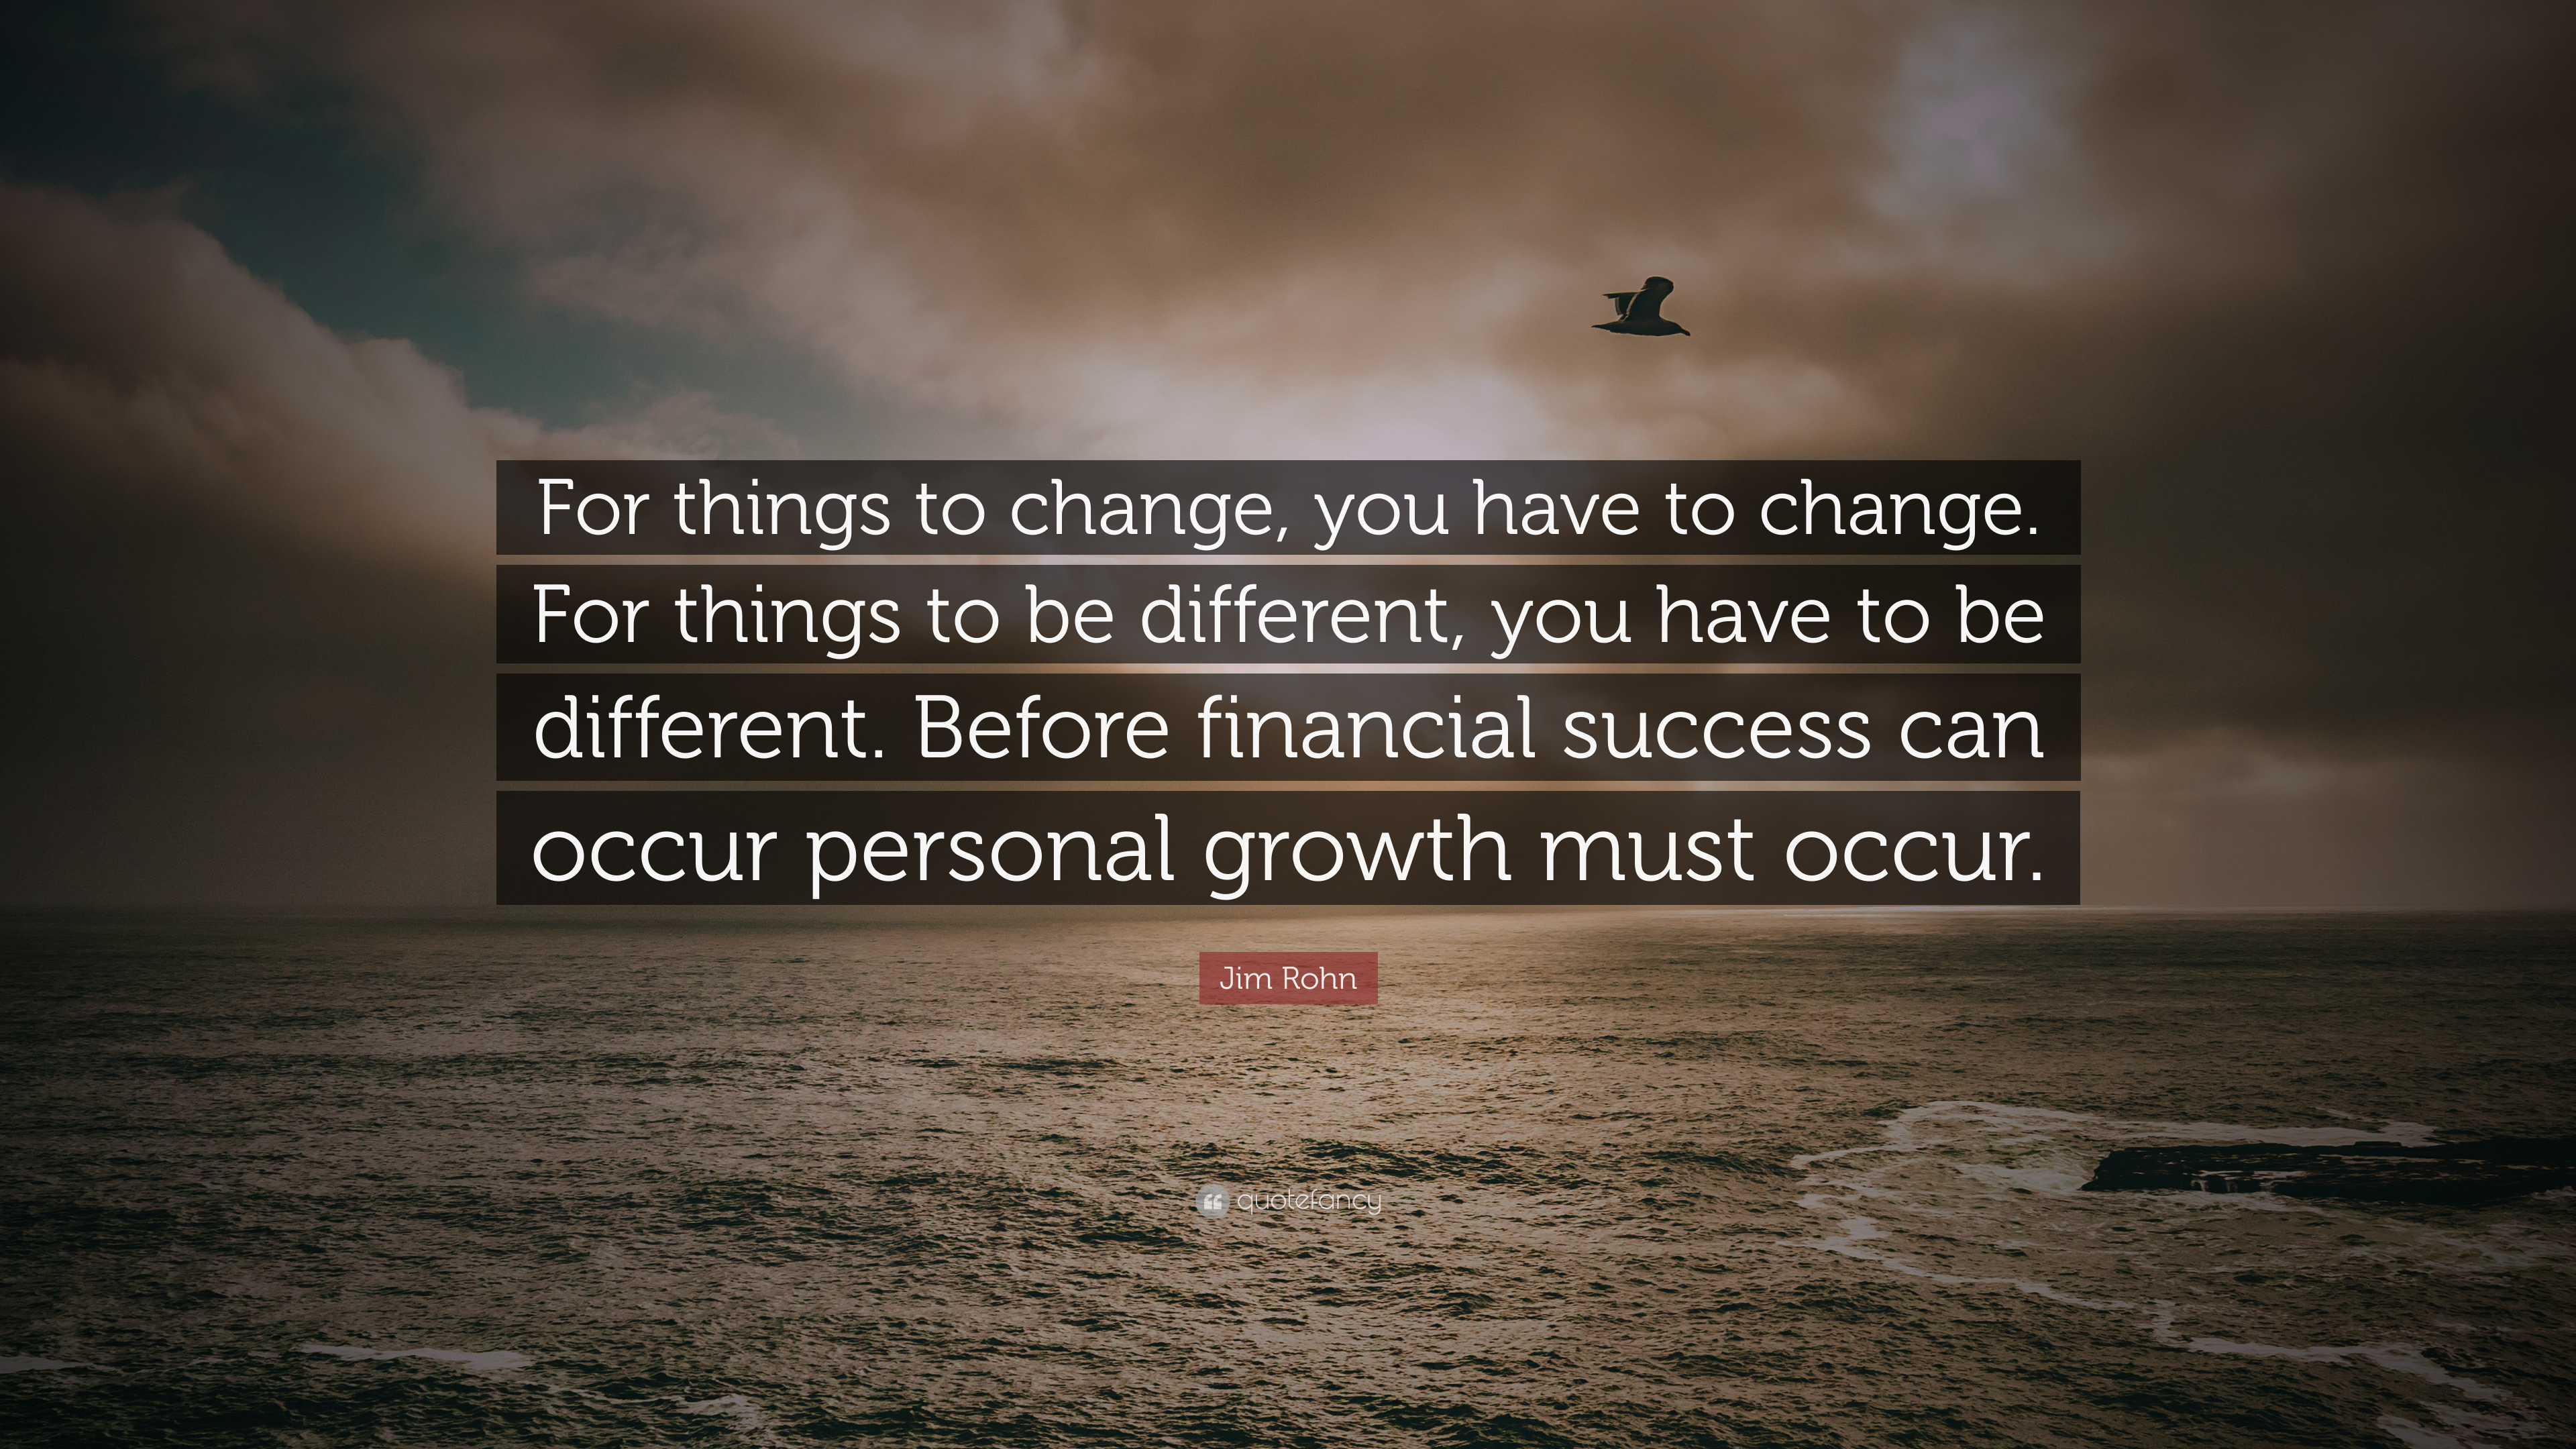 Jim Rohn Quotes For Things To Change Twitter